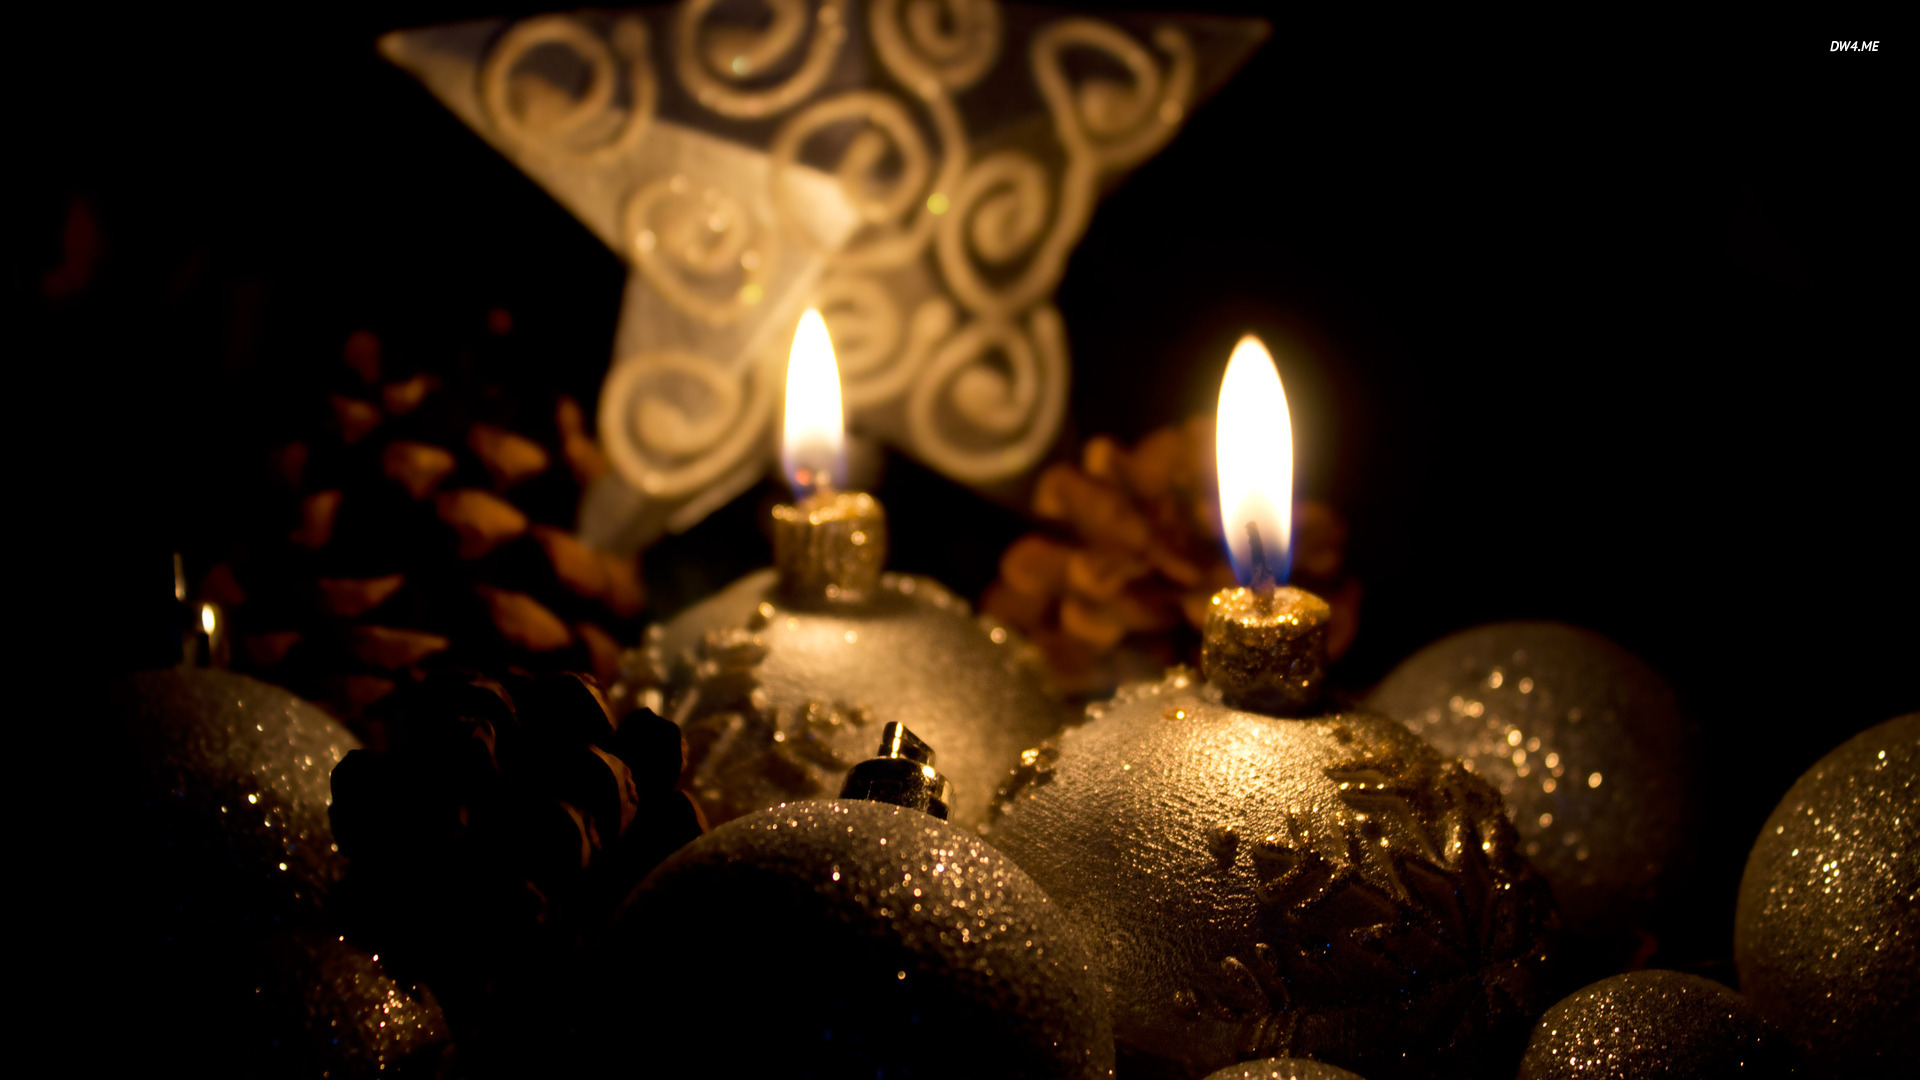 Golden Christmas candles wallpaper   Photography wallpapers   1015 1920x1080